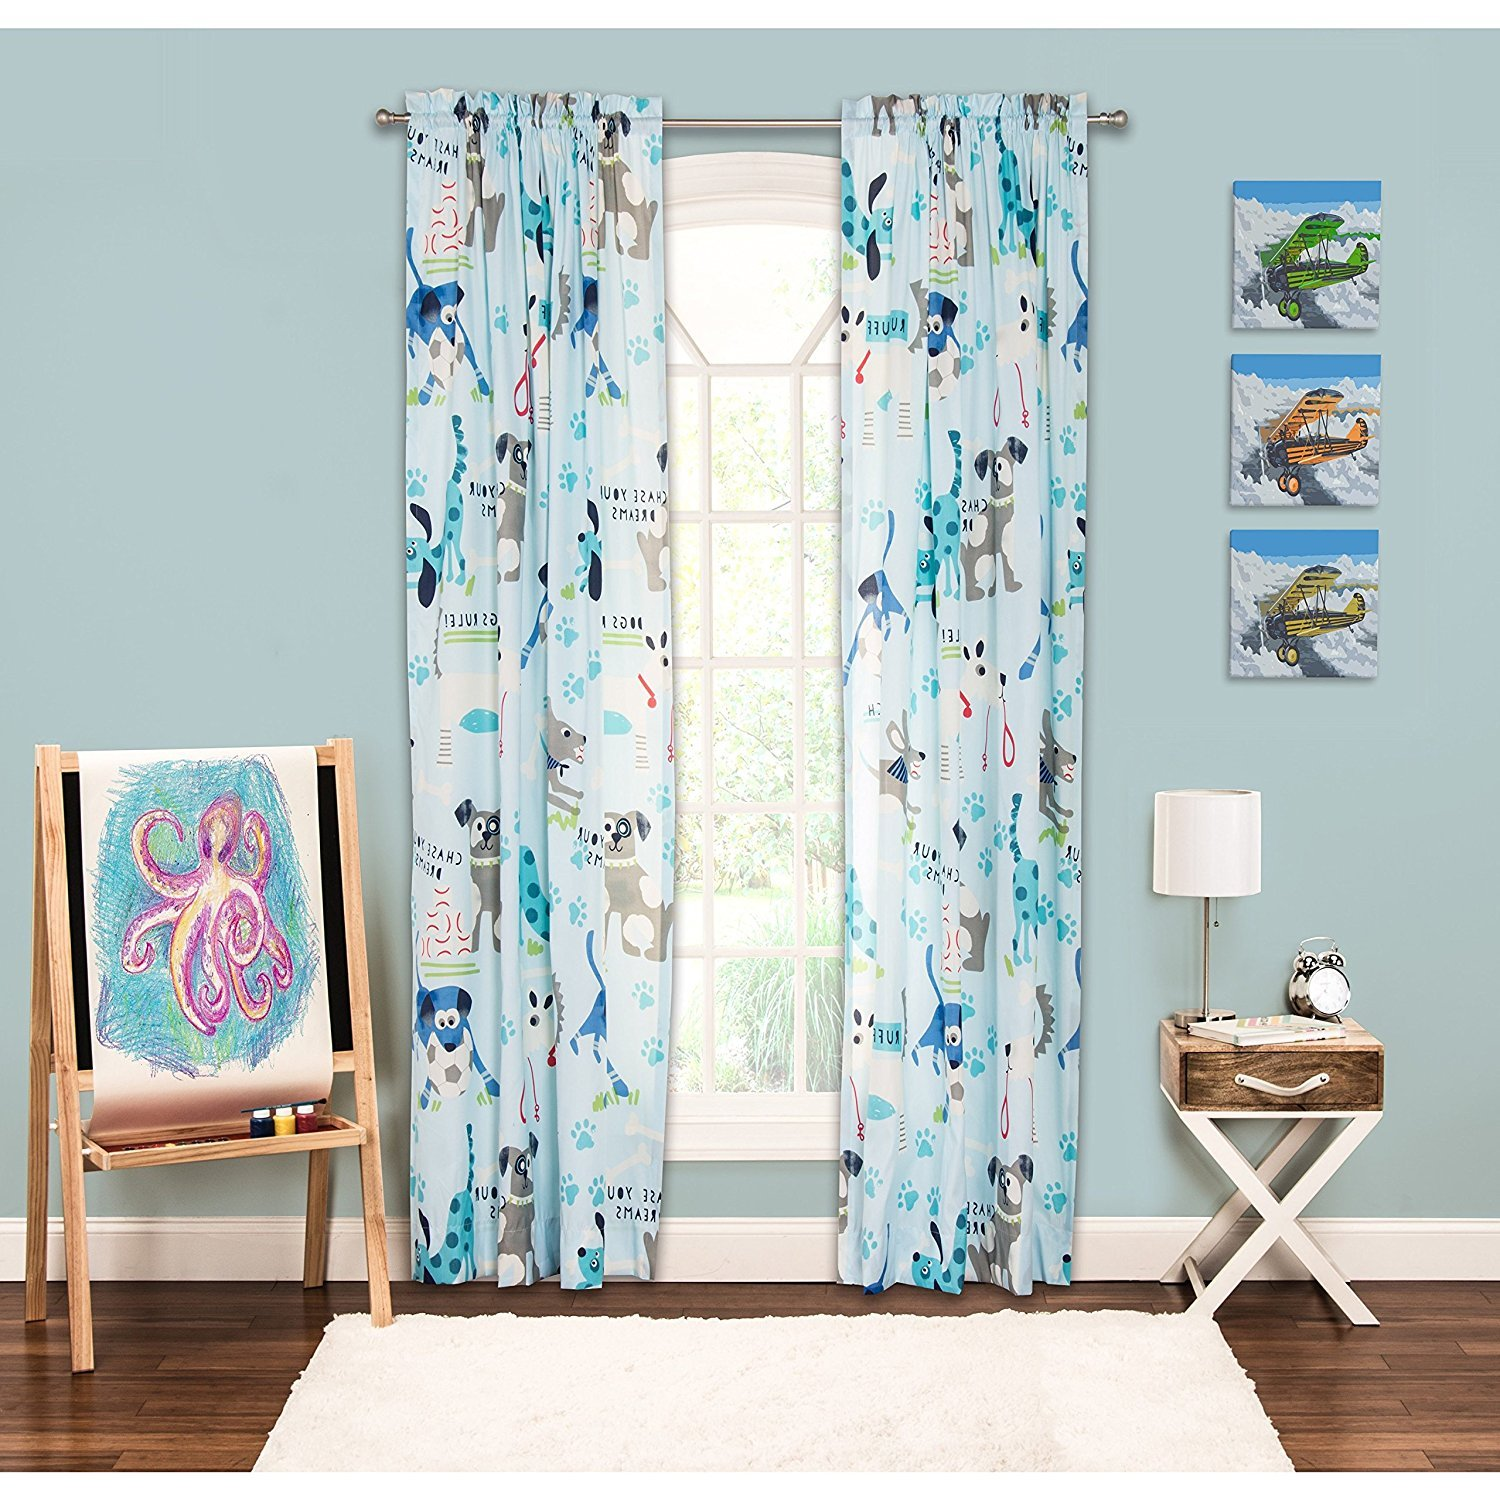 D-UNKN 1pc Girls Puppies Paw Prints Sky Blue Grey White Window Curtain, Gray Blue Colour Kids Themed Teen Graphic Novelty Polyester Pretty Adorable Rod Pocket, 84 Animal Pattern Single Panel